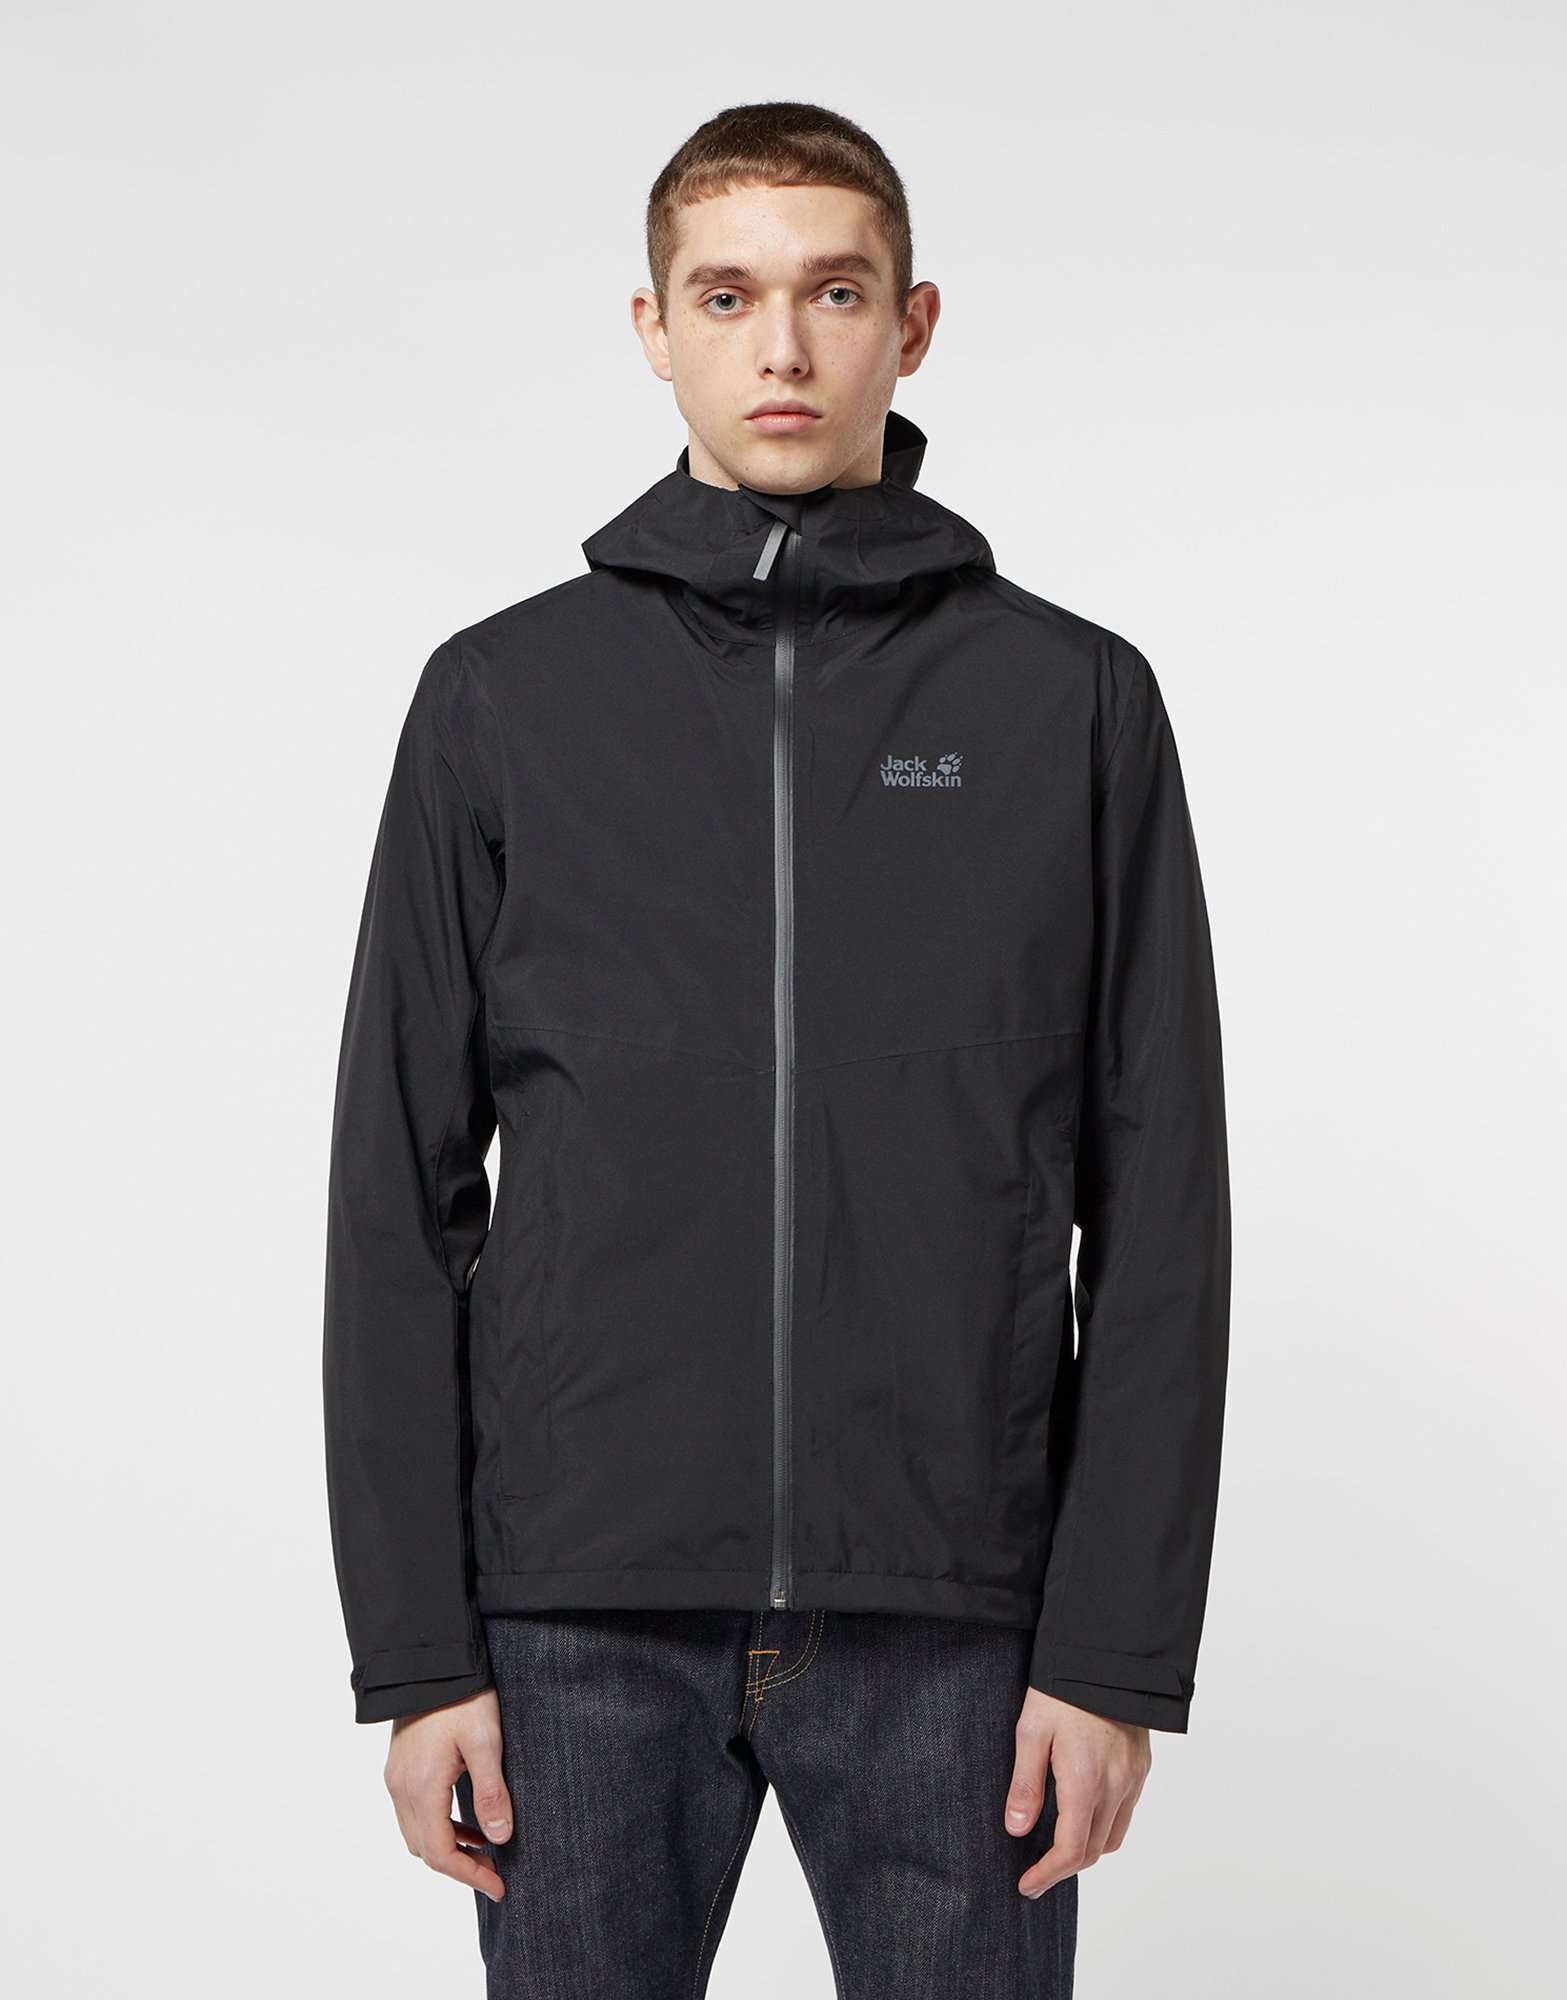 Jack Wolfskin 100% Recycled Lightweight Jacket